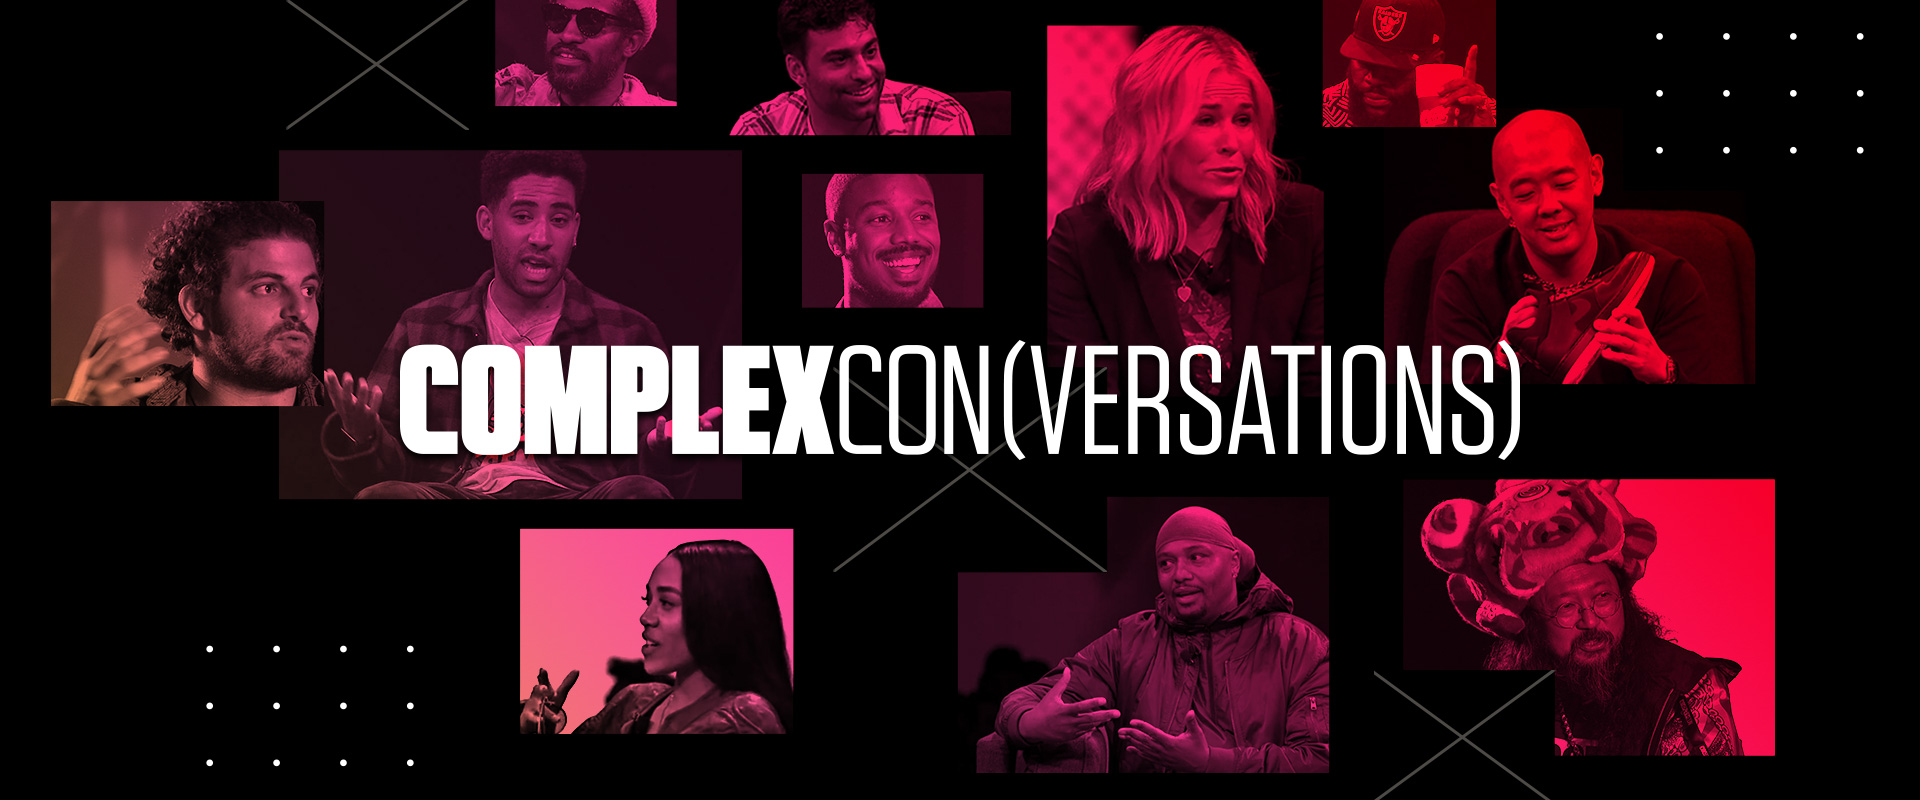 Michael B. Jordan and Ryan Coogler during ComplexCon(versations)